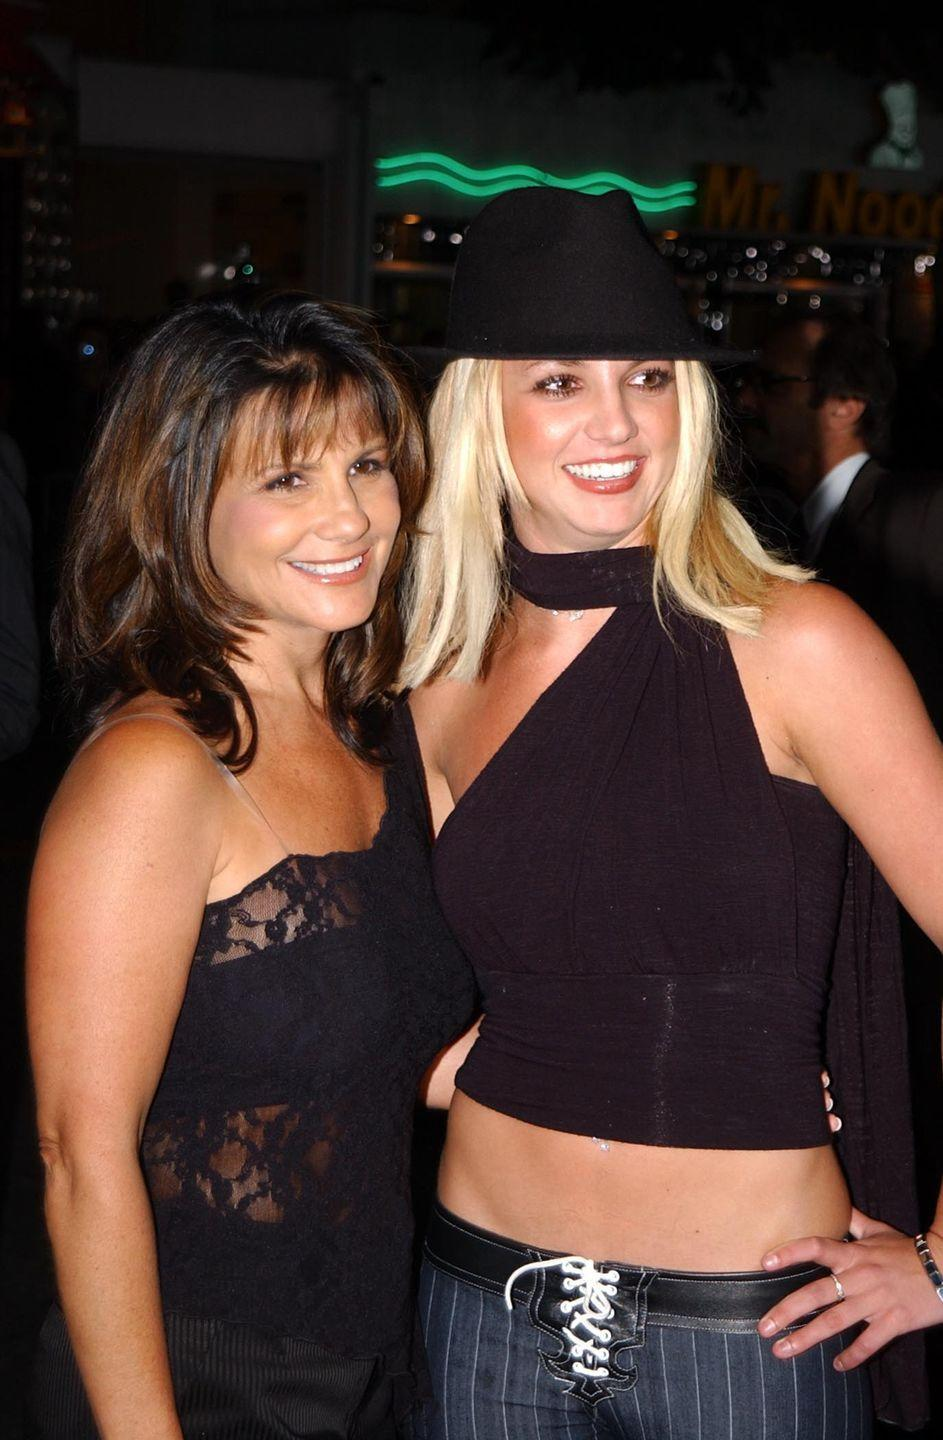 "<p>By February 2001, when she was 19, Britney Spears had already released two platinum albums, headlined international tours and been nominated for a Grammy award. Might as well also add published novelist to the list. </p><p><em>A Mother's Gift</em>, the second book co-written by Britney and her mom, Lynne, tells a slightly familiar story: a girl from small-town Mississippi who dreams of being a superstar singer and relies on the support of her mother when she's accepted to a prestigious school of music, according to <a href=""https://www.publishersweekly.com/978-0-385-72953-6"" rel=""nofollow noopener"" target=""_blank"" data-ylk=""slk:Publishers Weekly"" class=""link rapid-noclick-resp"">Publishers Weekly</a>. </p><p>However, Britney's writing didn't seem to be as much of a hit (me baby, one more time) with critics. ""A portion of the proceeds from sales will go to the Britney Spears Foundation, which operates a performing arts camp for disadvantaged 11 to 14 year olds, but I suggest a less painful way of supporting the cause would be to send the money direct–I'd pay them to take this book off my desk,"" wrote a reviewer for <a href=""https://www.rte.ie/entertainment/book-reviews/2001/0614/445375-mothersgift/"" rel=""nofollow noopener"" target=""_blank"" data-ylk=""slk:RTE"" class=""link rapid-noclick-resp"">RTE</a>. <br><br></p><p><a class=""link rapid-noclick-resp"" href=""https://www.amazon.com/Mothers-Gift-Britney-Spears/dp/0440237998?tag=syn-yahoo-20&ascsubtag=%5Bartid%7C2139.g.34385633%5Bsrc%7Cyahoo-us"" rel=""nofollow noopener"" target=""_blank"" data-ylk=""slk:Buy the Book"">Buy the Book</a></p>"